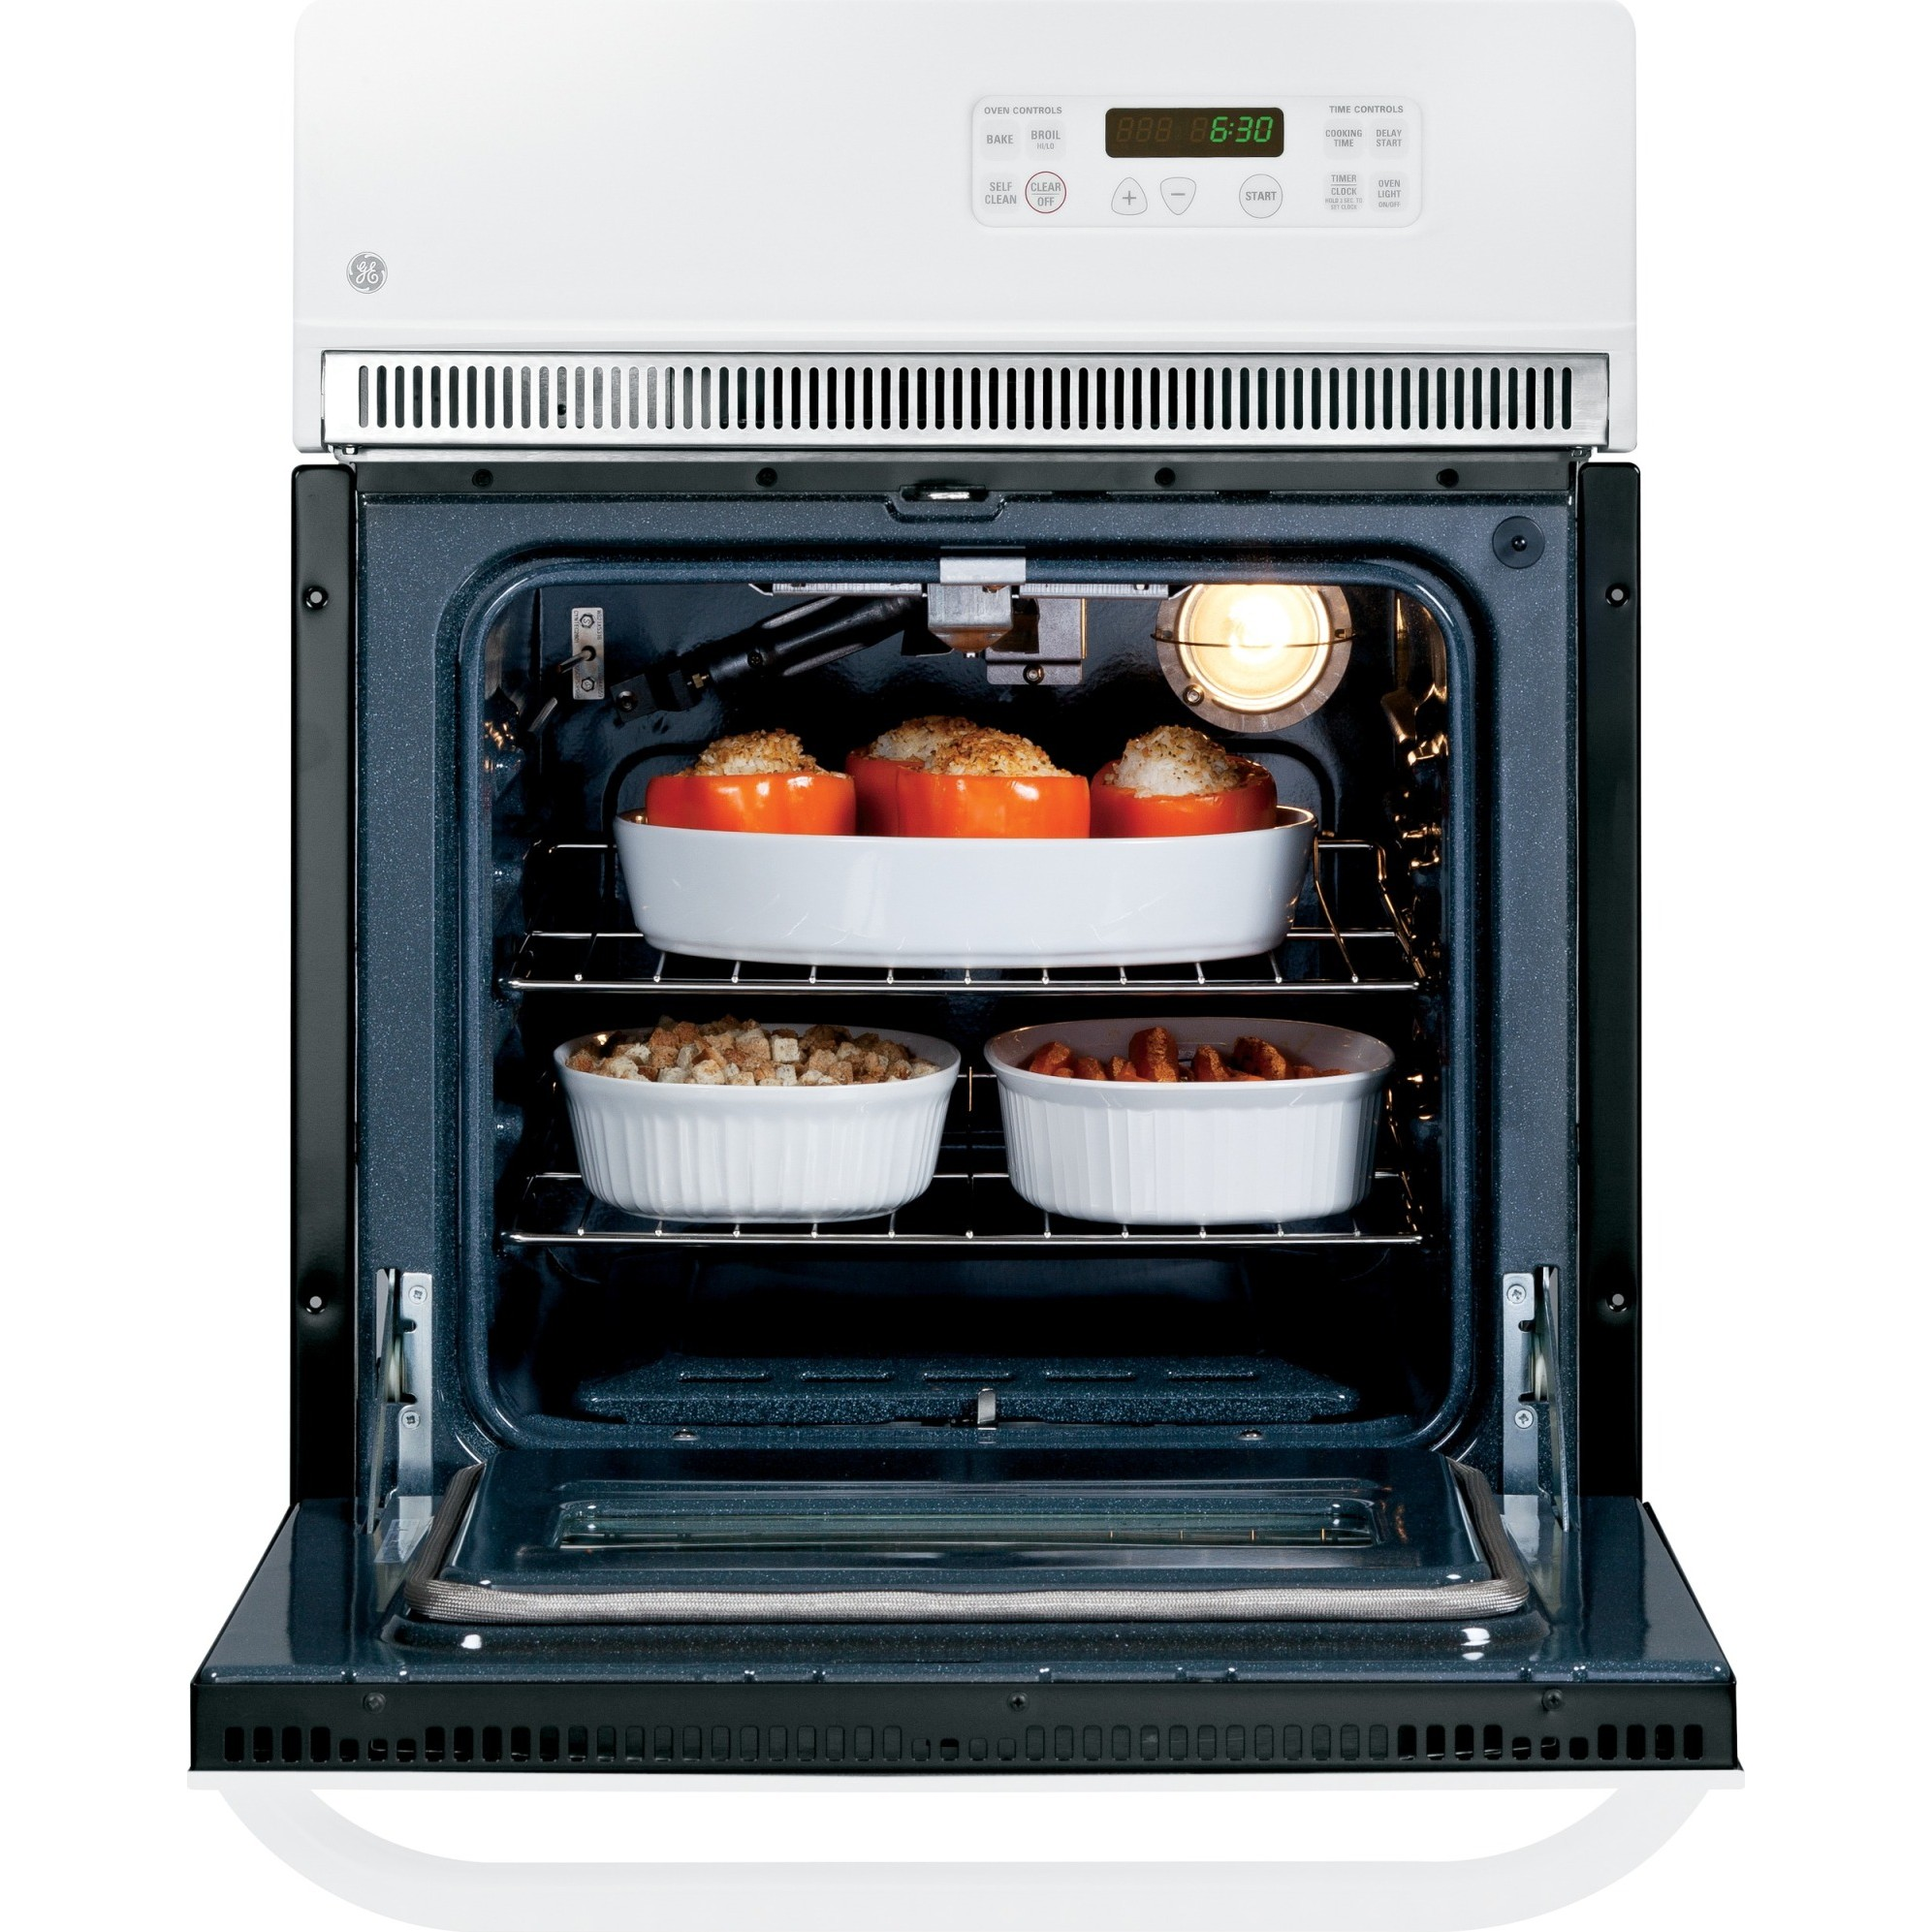 Jrp20wjww Ge 24 Electric Single Self Cleaning Wall Oven